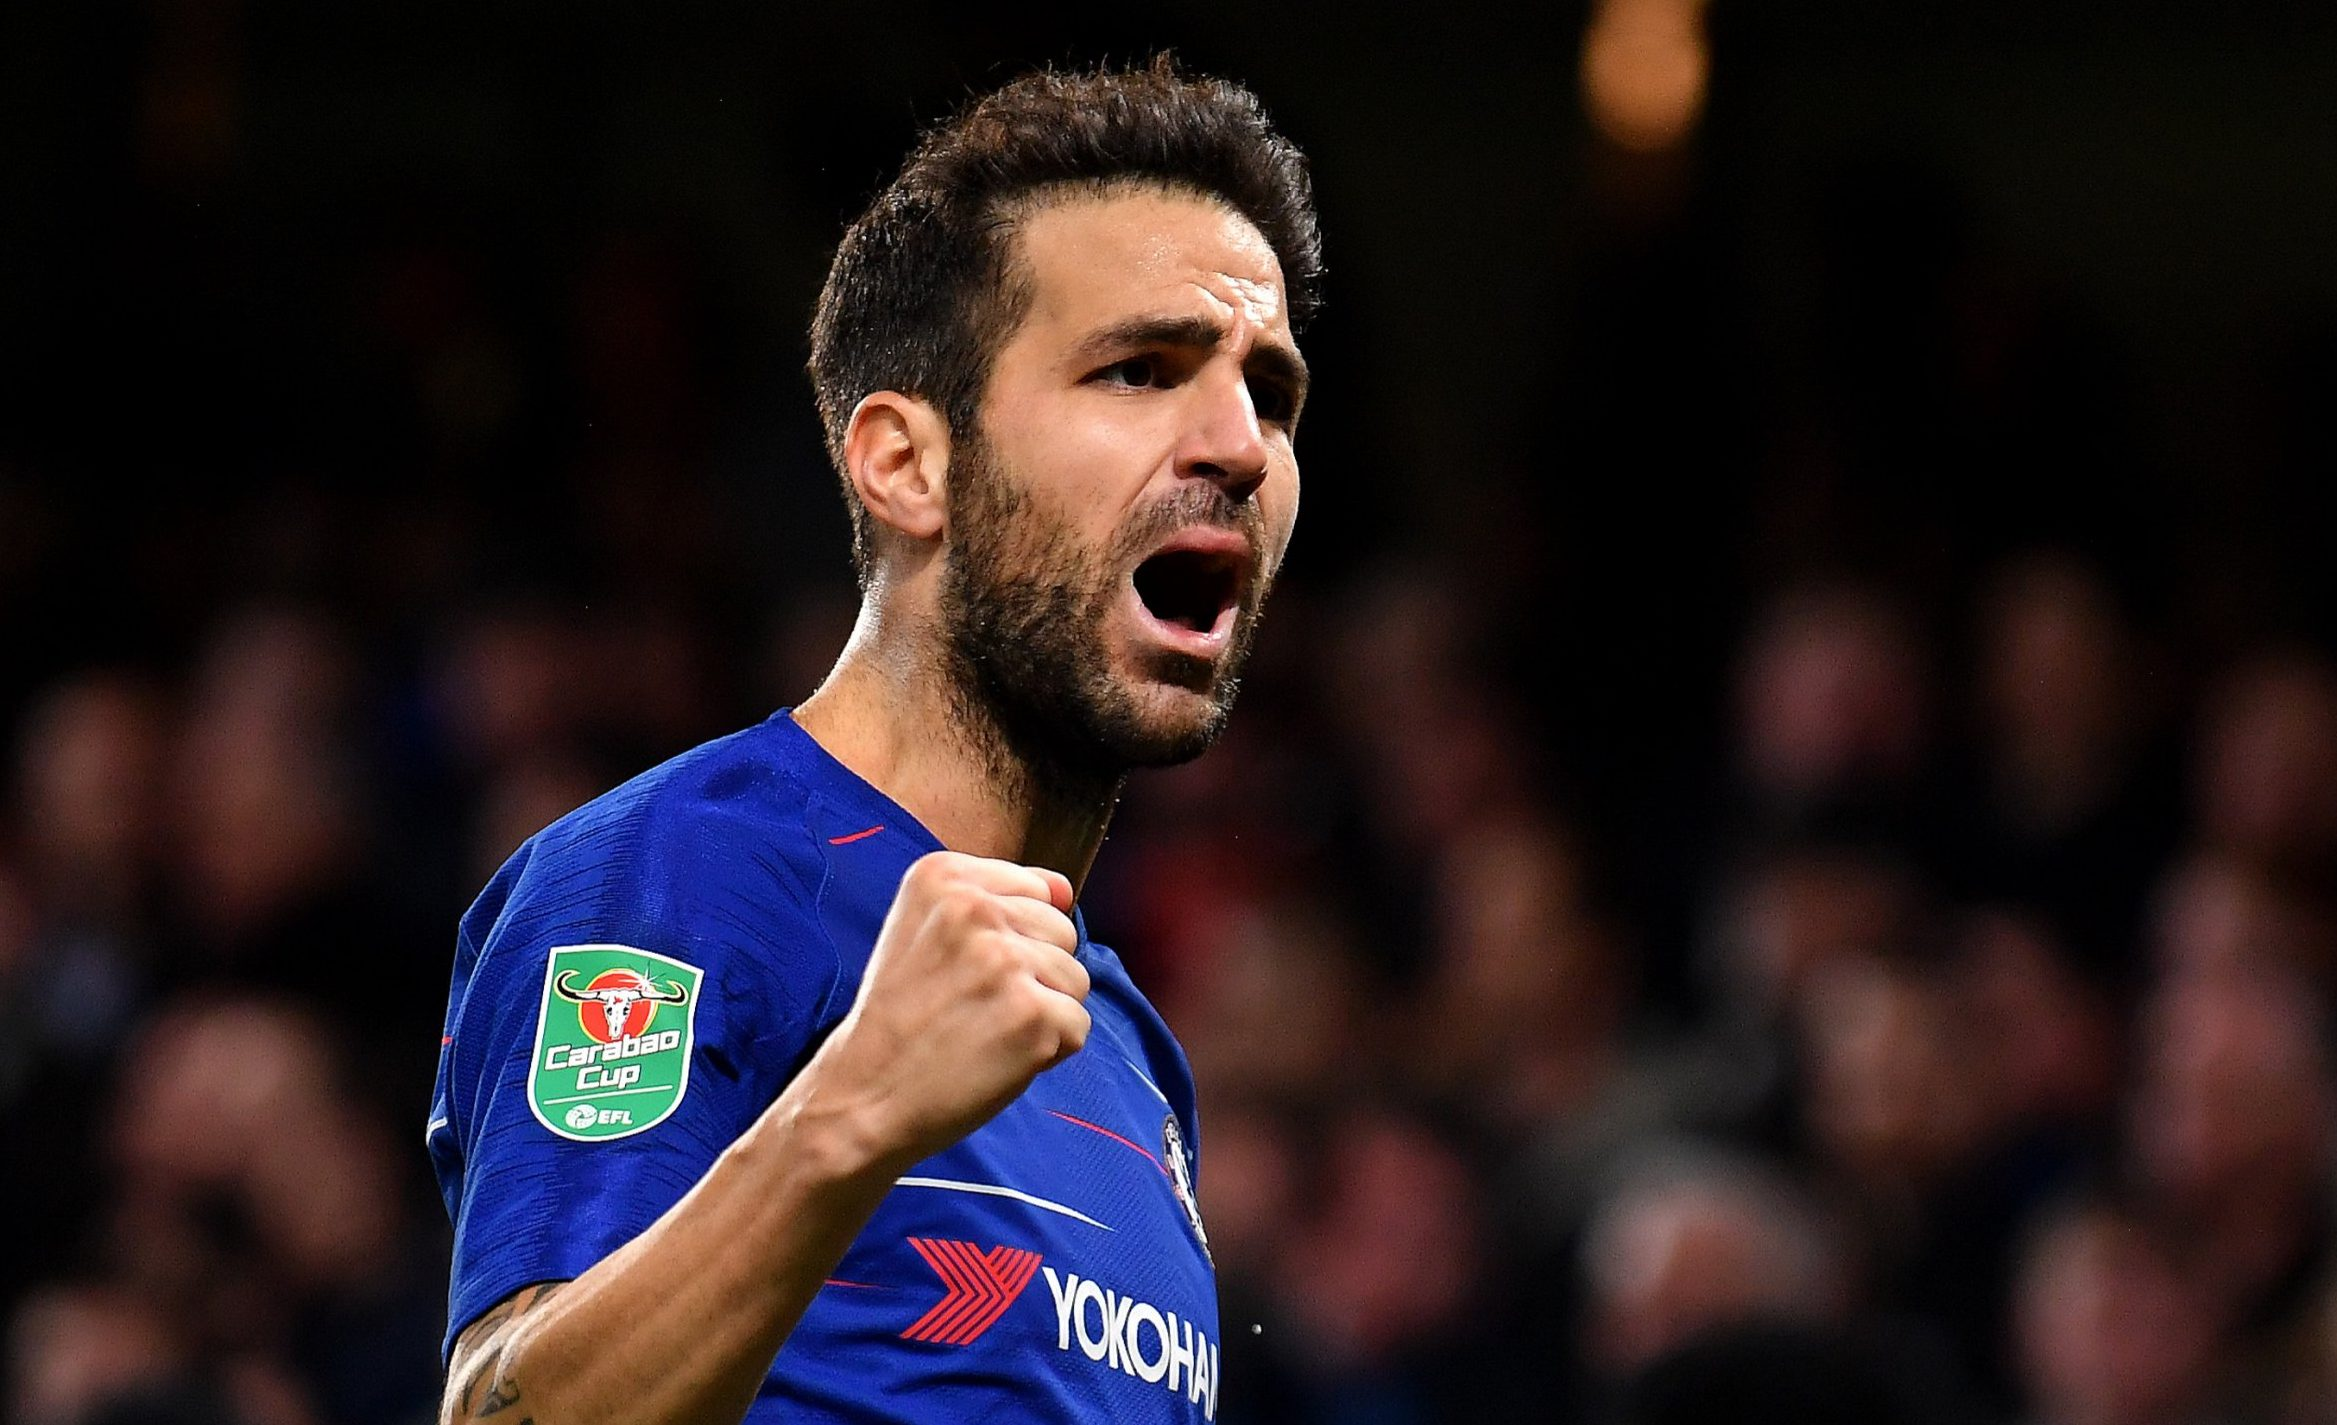 LONDON, ENGLAND - OCTOBER 31: Cesc Fabregas of Chelsea celebrates after scoring his team's third goal during the Carabao Cup Fourth Round match between Chelsea and Derby County at Stamford Bridge on October 31, 2018 in London, England. (Photo by Mike Hewitt/Getty Images)